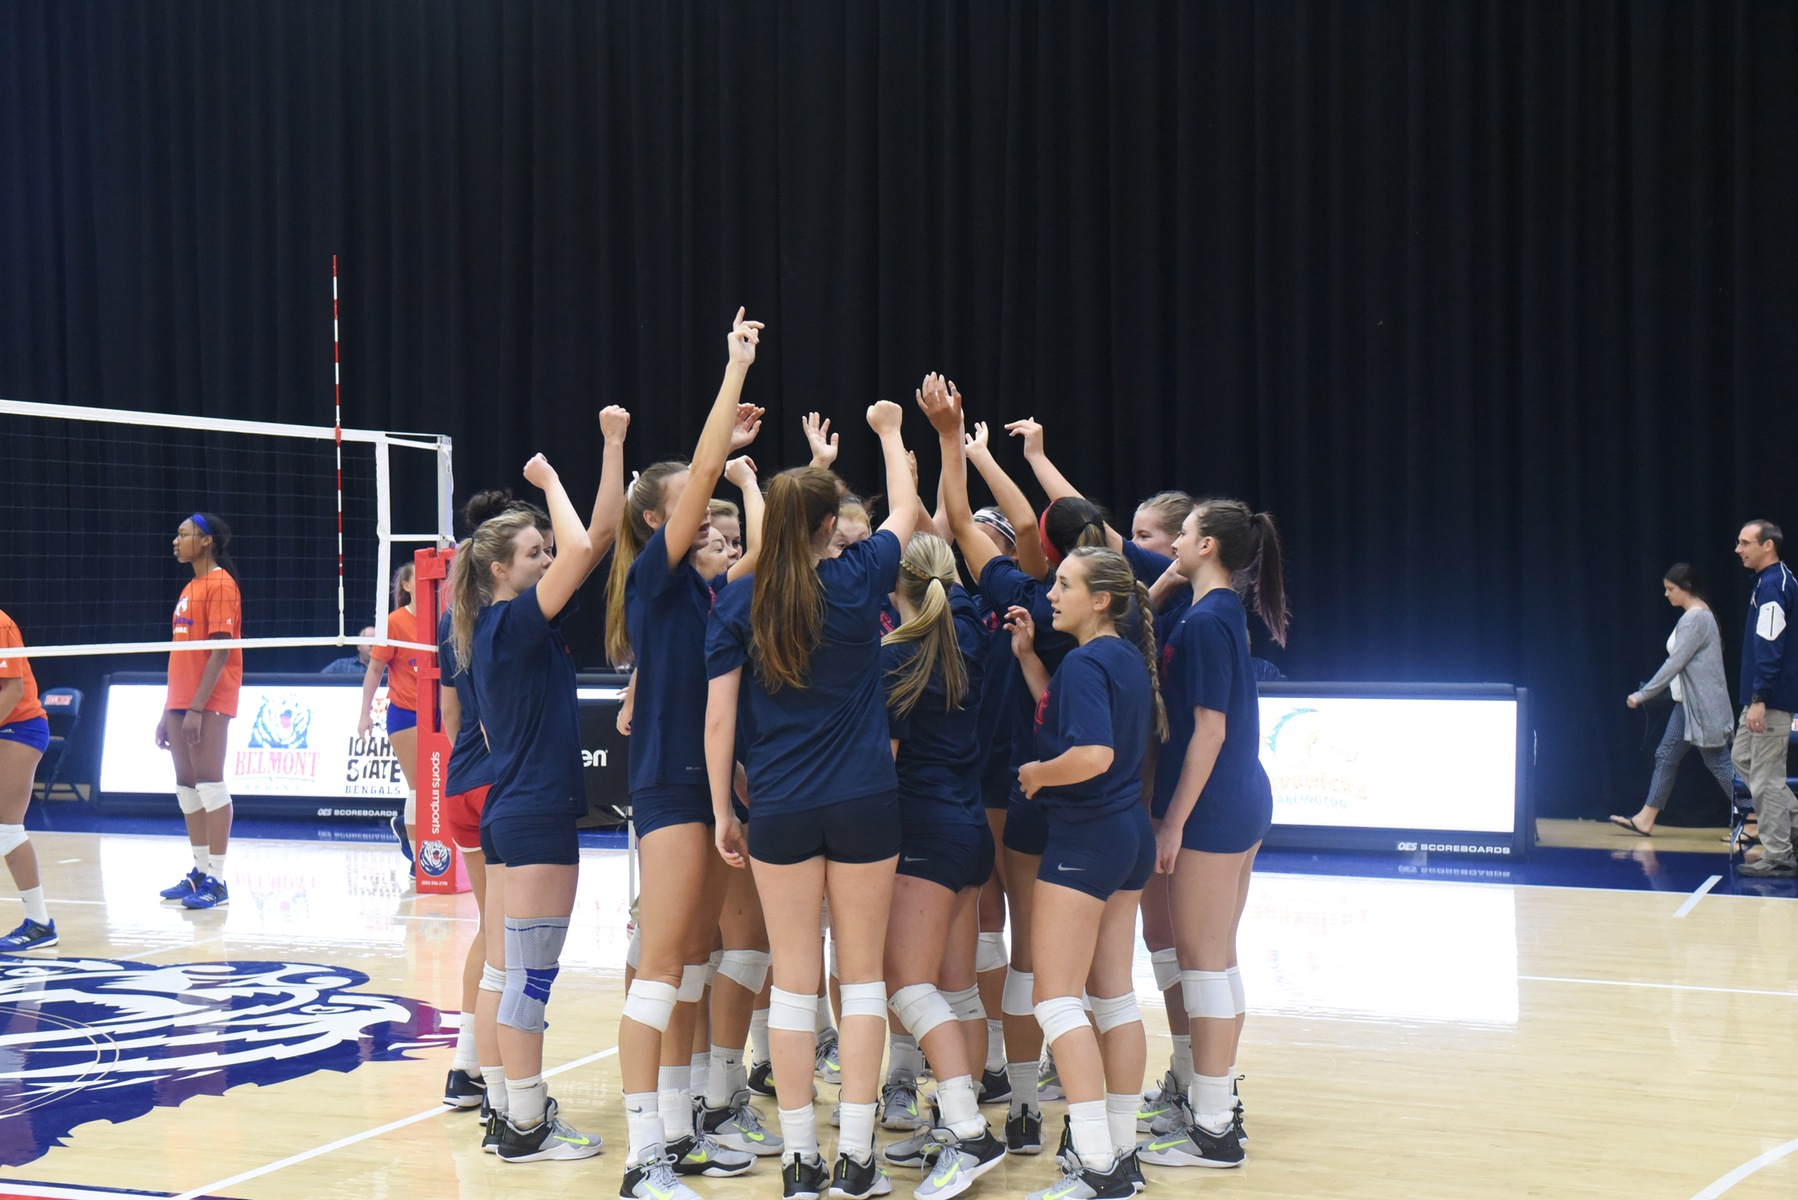 Registrations Filling Fast for Volleyball Camp